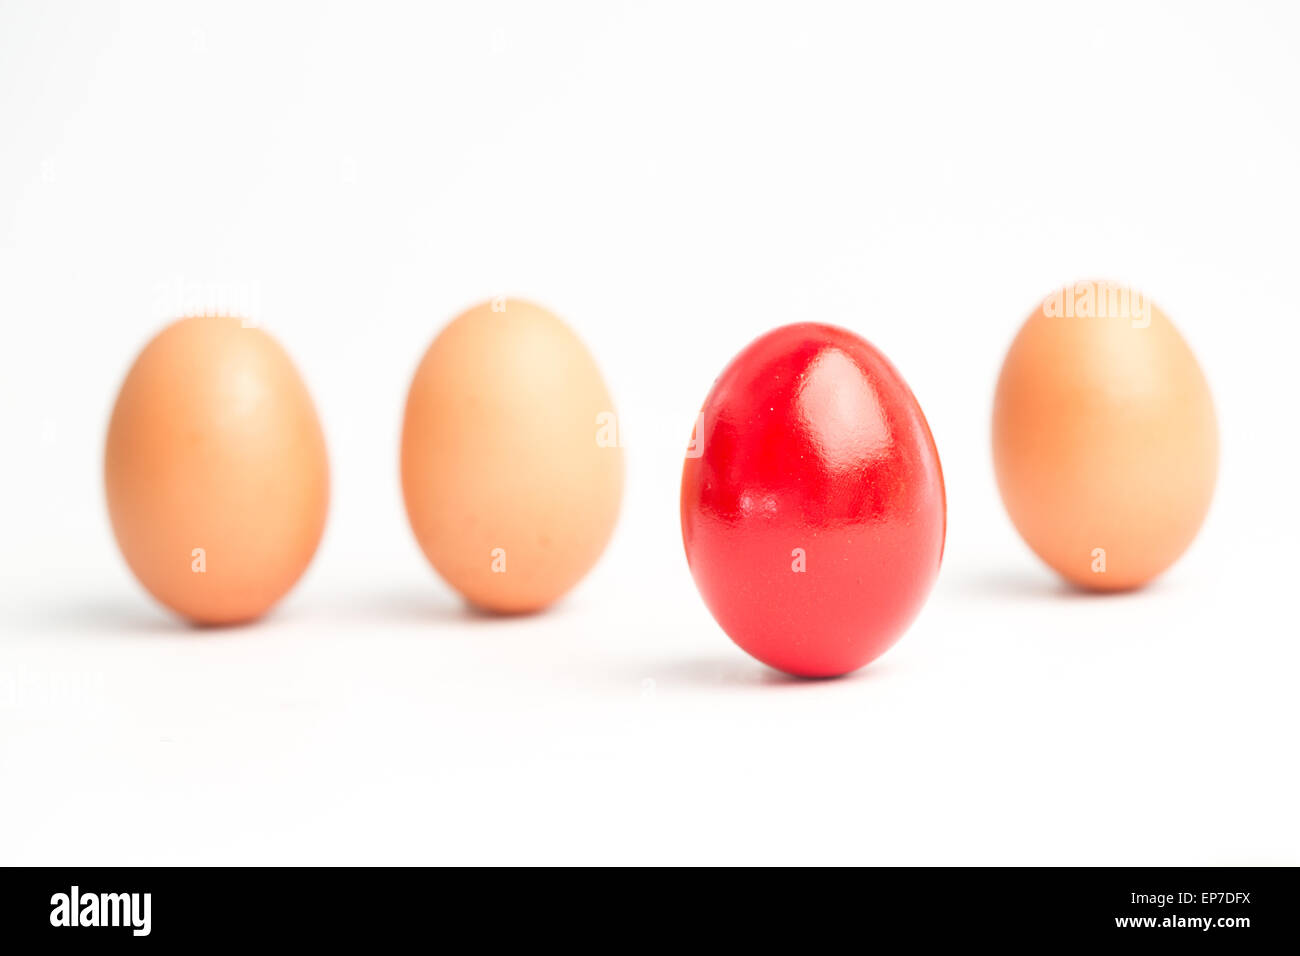 Four eggs in a row with one red one standing out - Stock Image